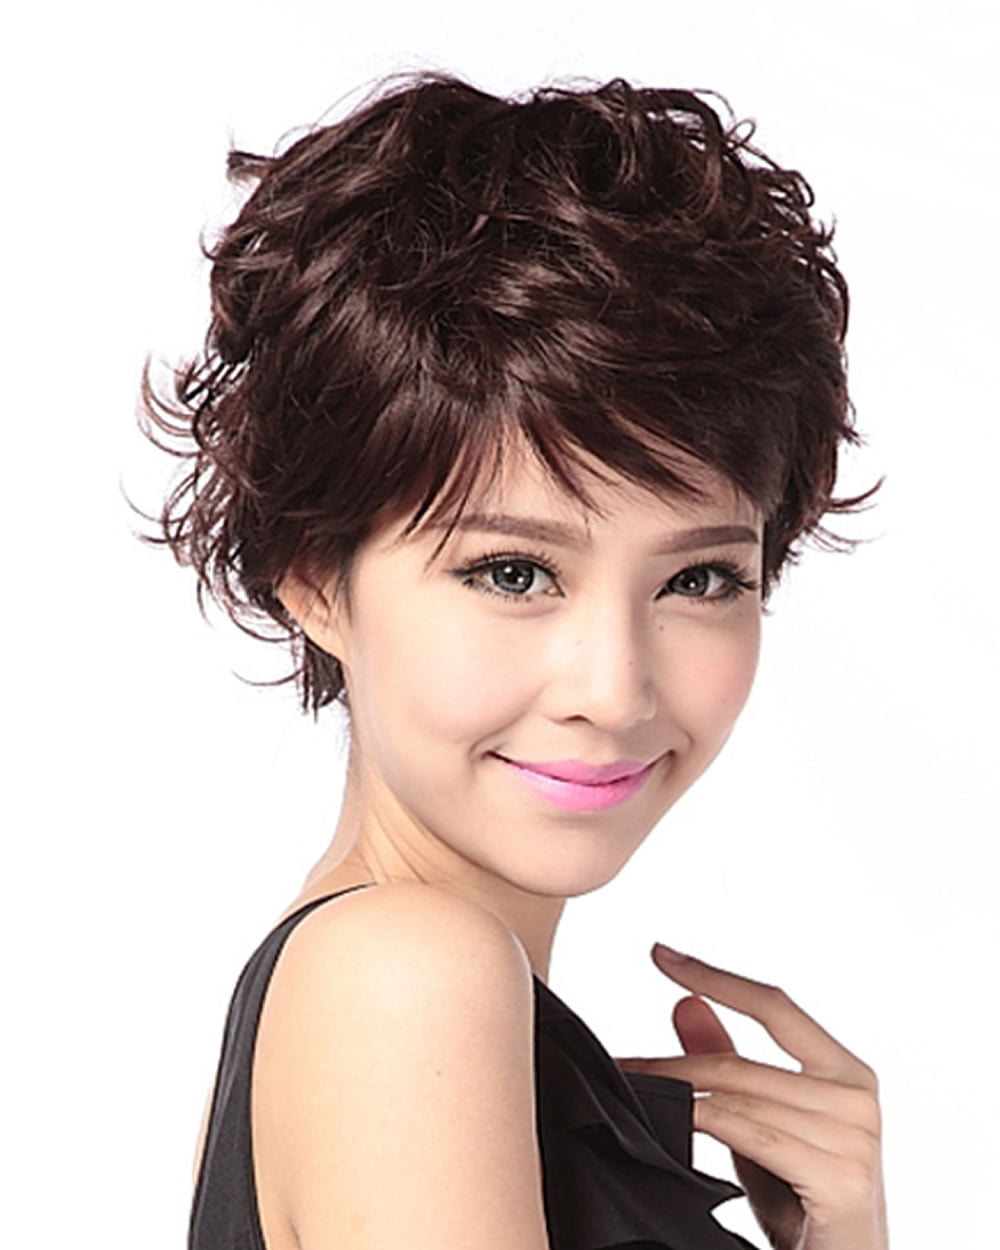 Pixie or Short Hairstyle Images 2018 & Short Hair Cut Inspirations ...